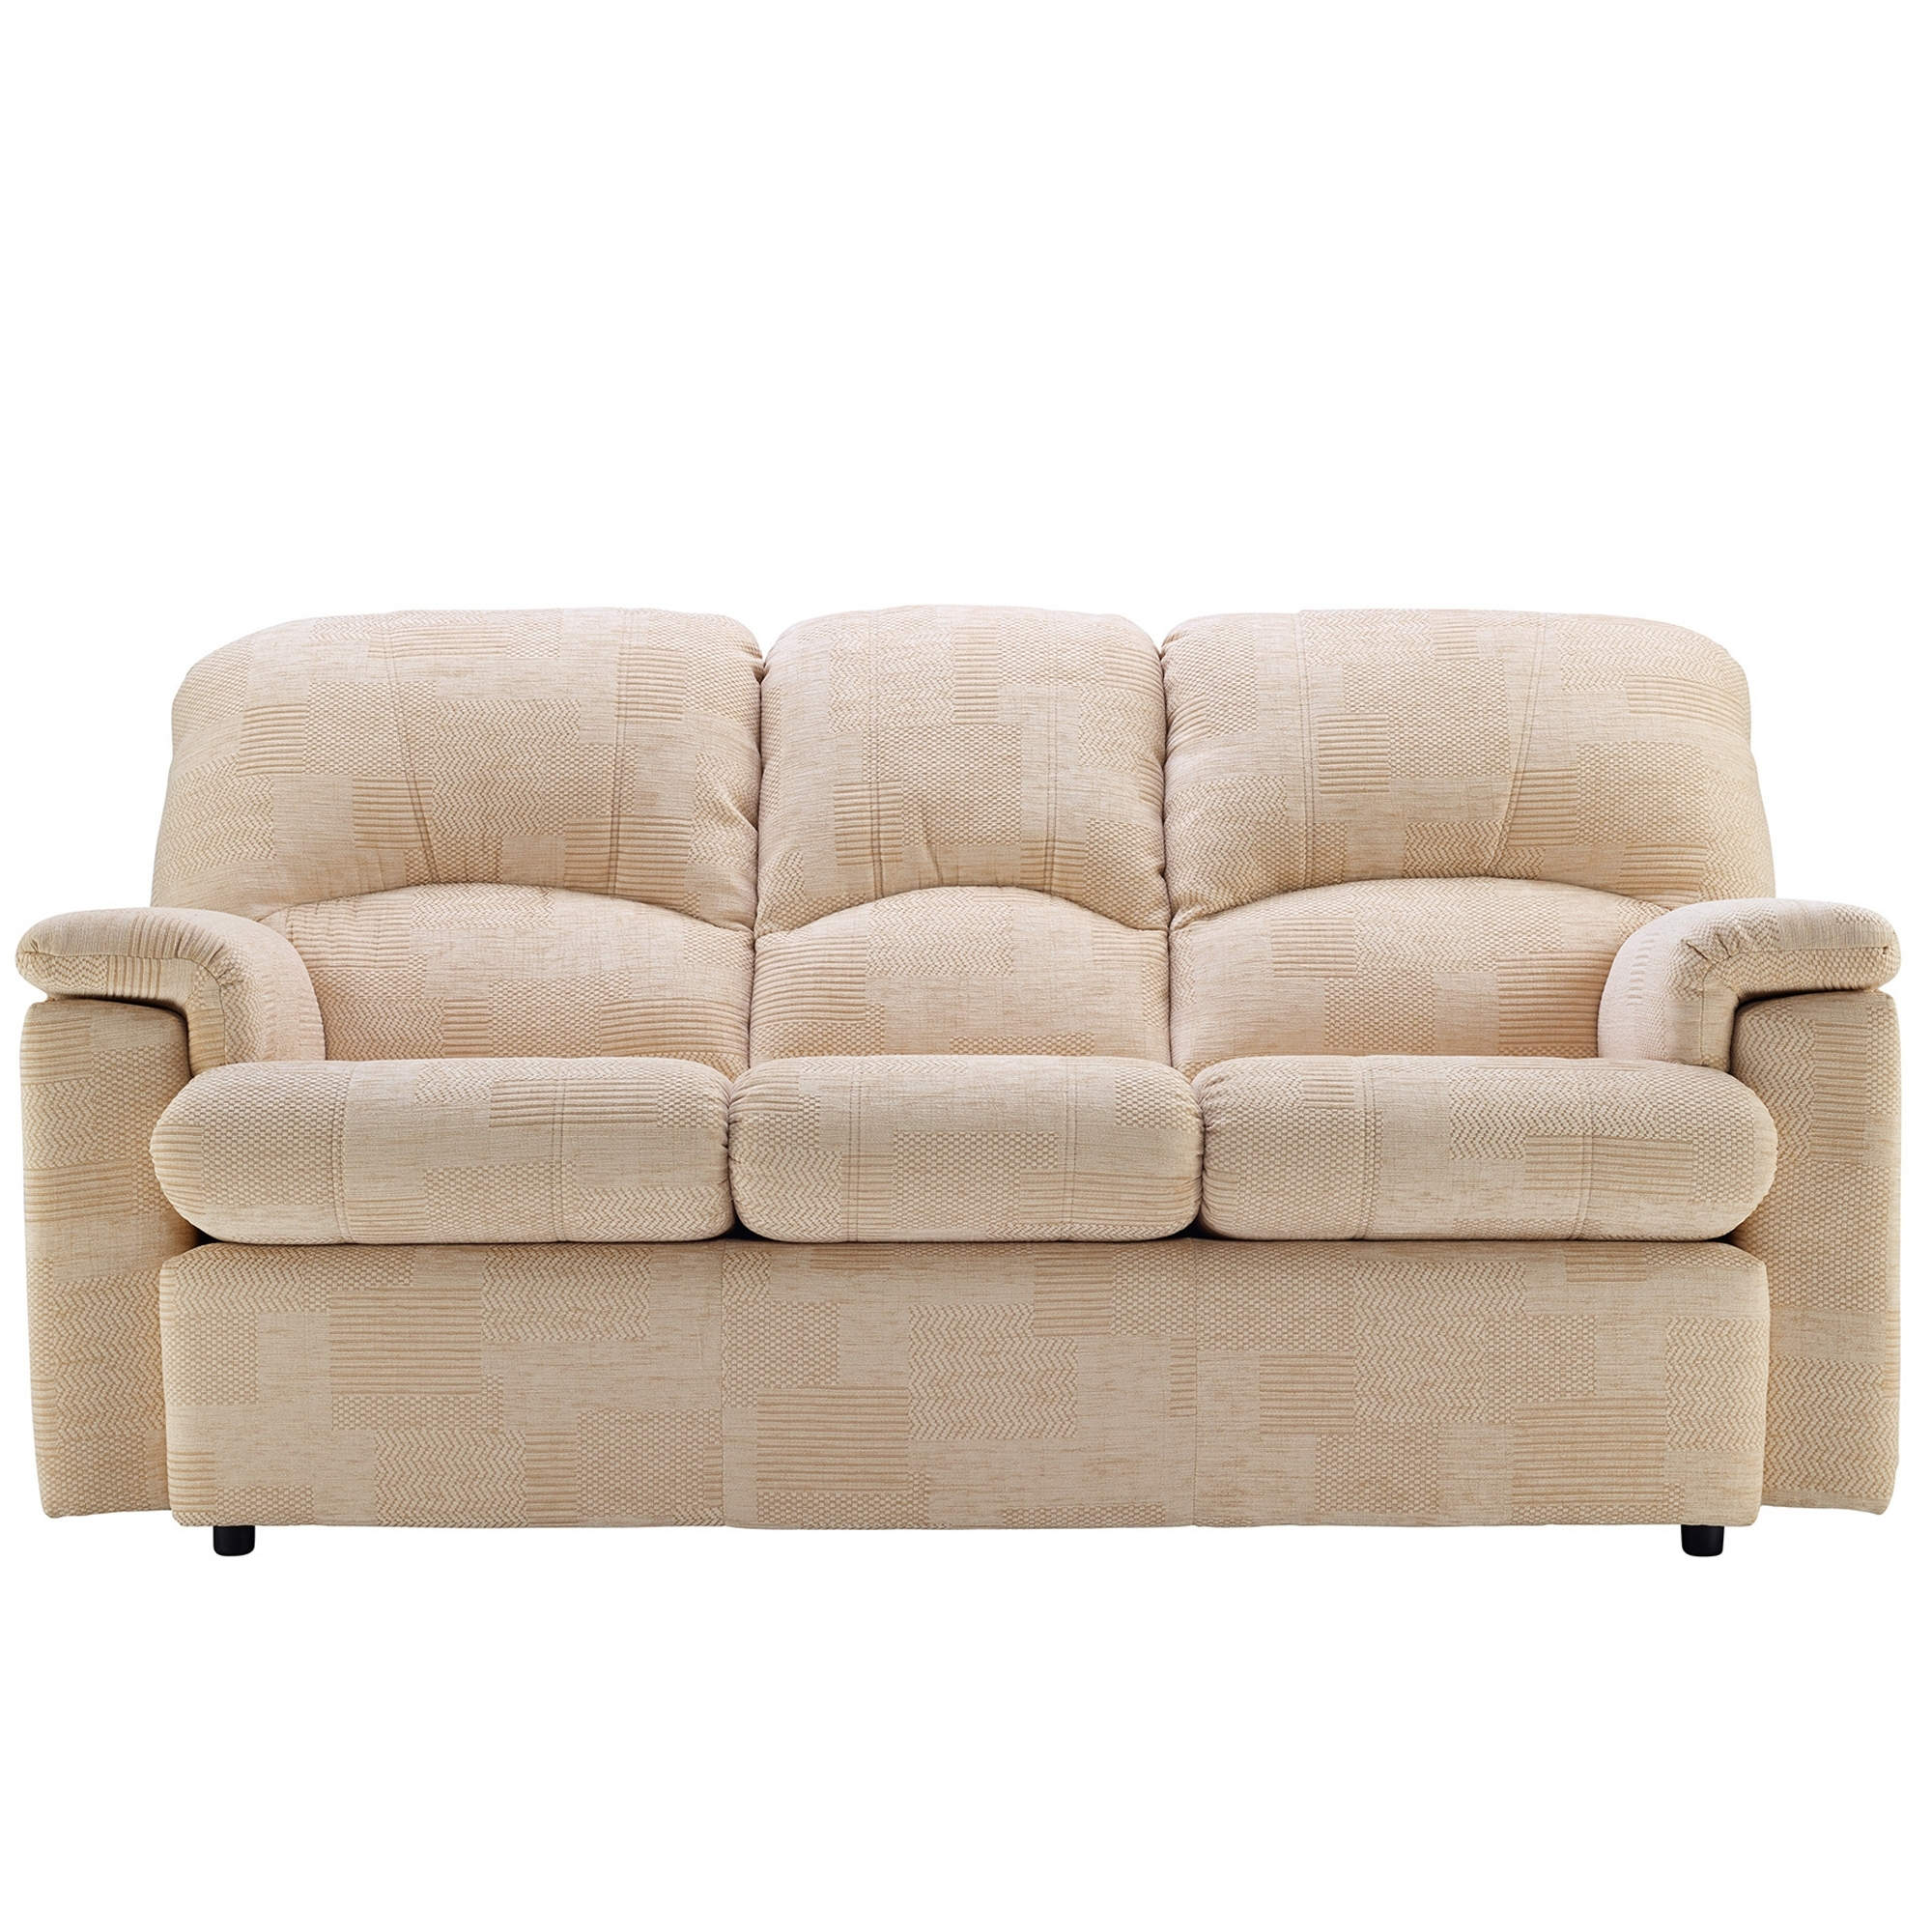 Second Hand Leather Sofas In Redditch: Second Hand 3 Seater Leather Recliner Sofa